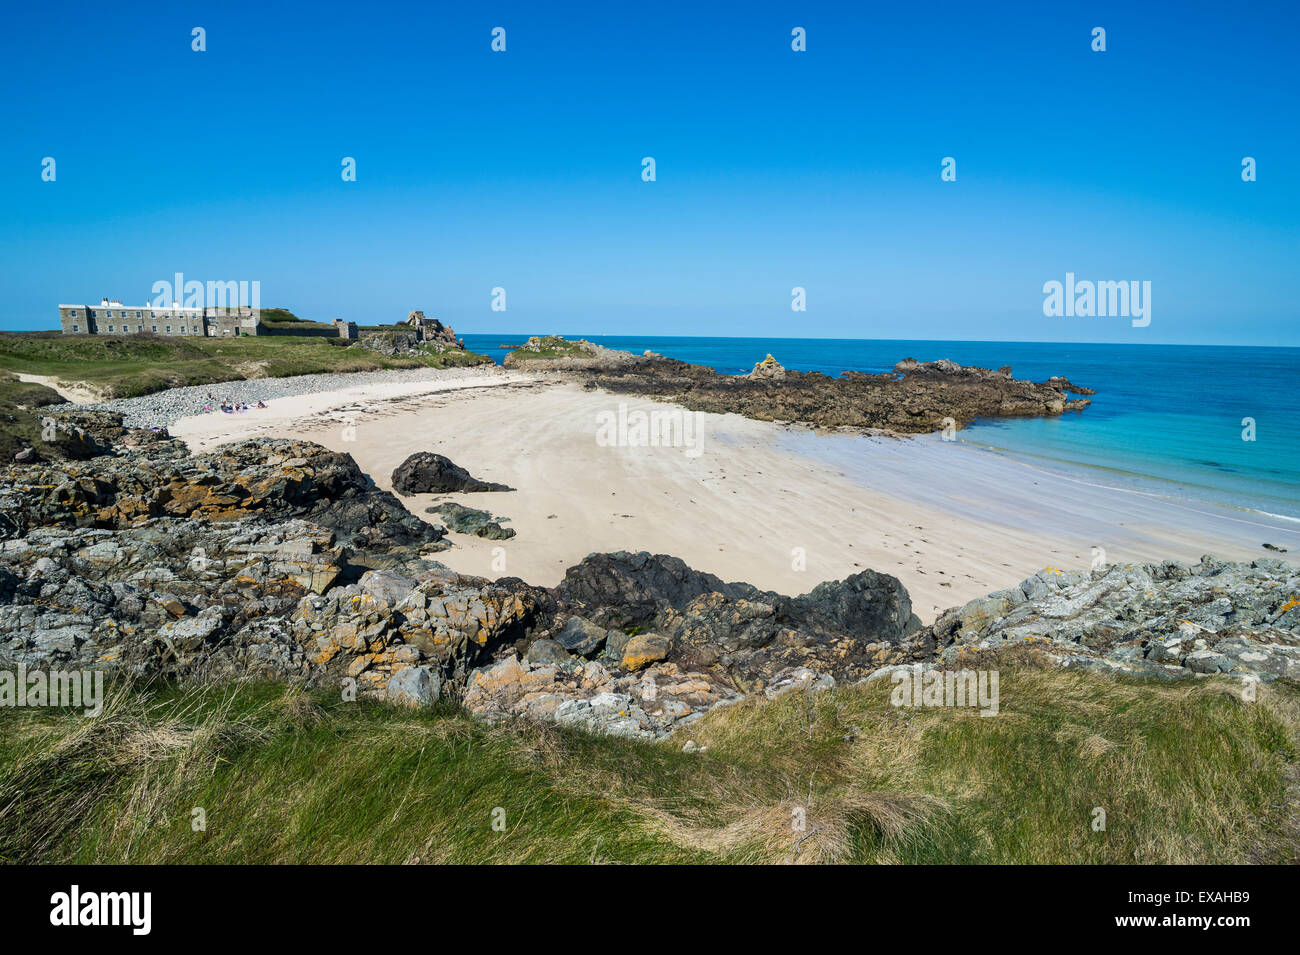 Corblets bay with Chateau A L'Etoc (Chateau Le Toc), Alderney, Channel Islands, United Kingdom, Europe - Stock Image